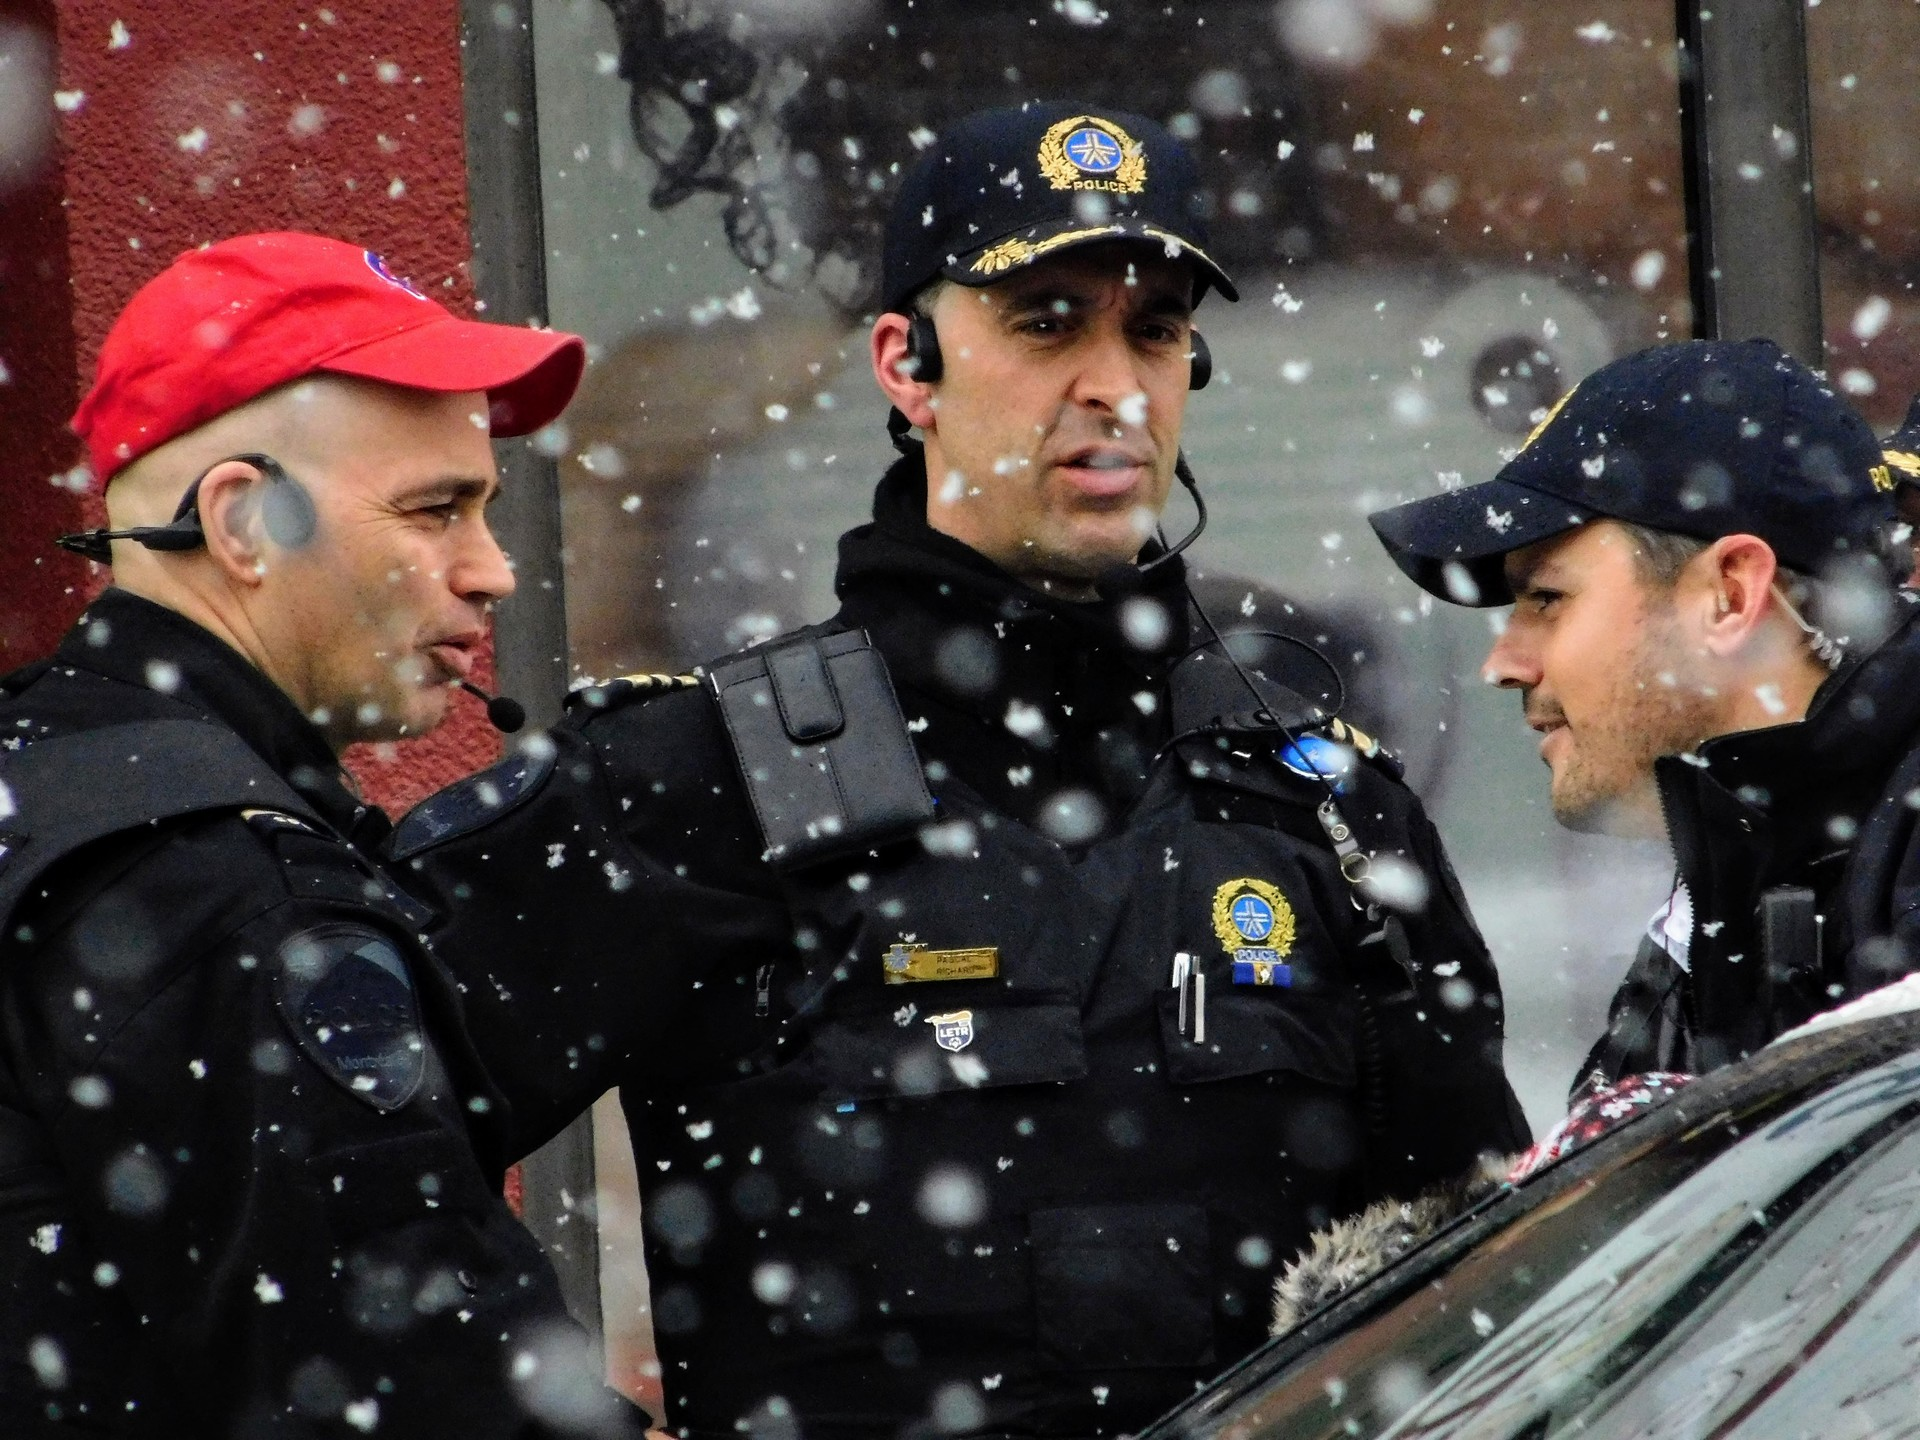 Montreal police | rick.cognyl.fournier, man, outfit, people